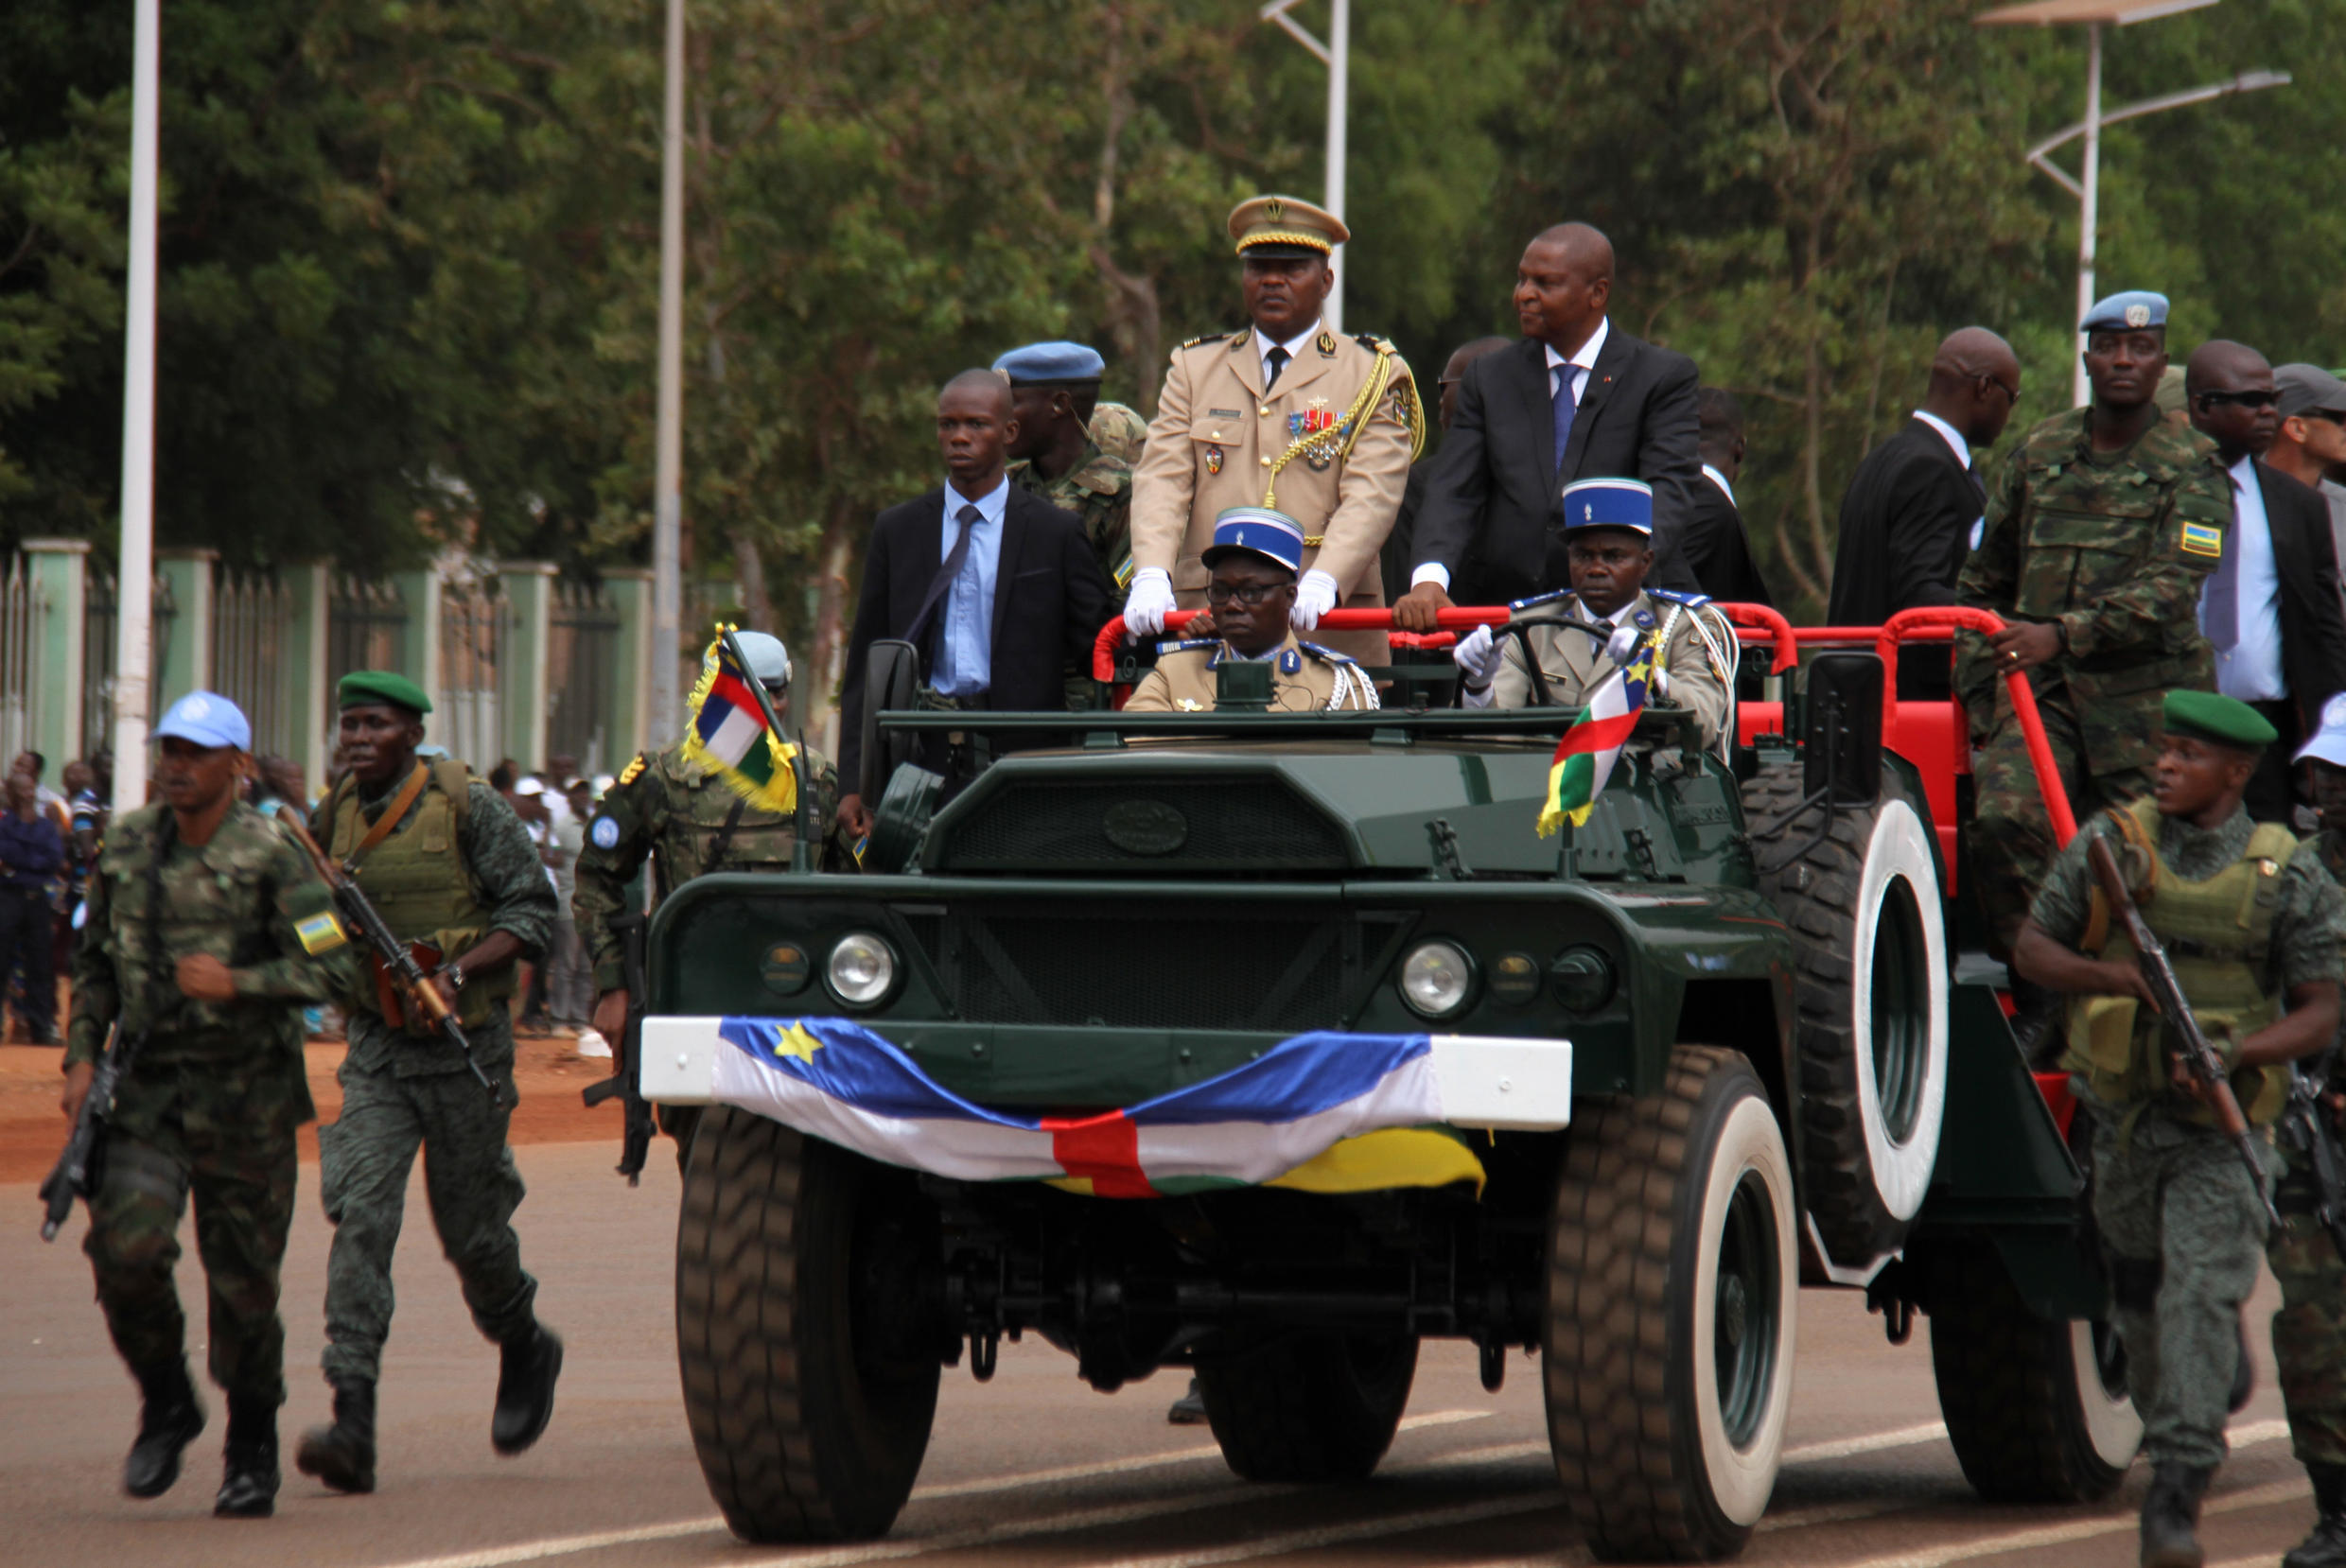 President Faustin Archange Touadéra at a military parade to mark 60 years since the Central African Republic gained independence from France.